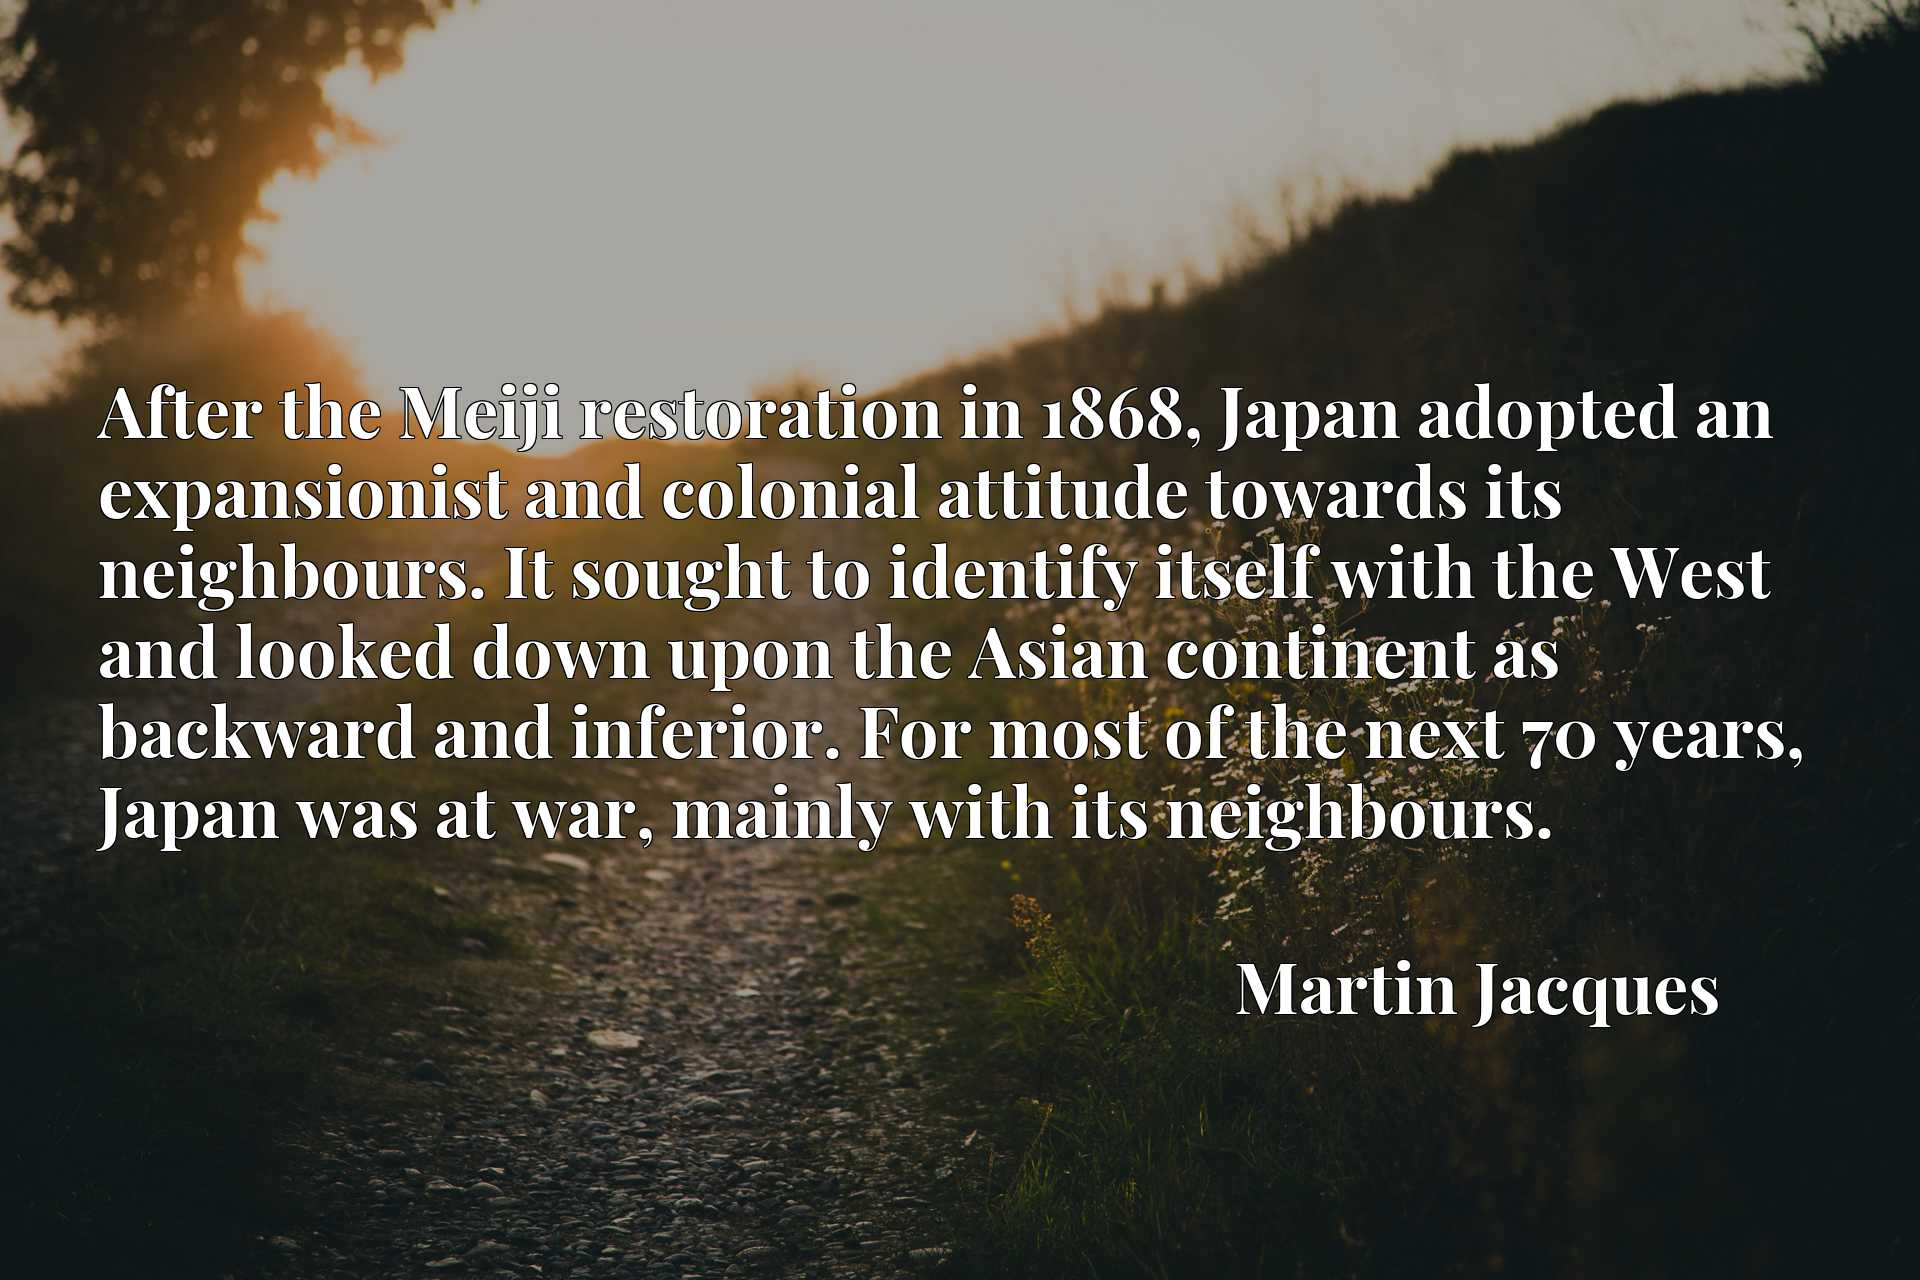 After the Meiji restoration in 1868, Japan adopted an expansionist and colonial attitude towards its neighbours. It sought to identify itself with the West and looked down upon the Asian continent as backward and inferior. For most of the next 70 years, Japan was at war, mainly with its neighbours.